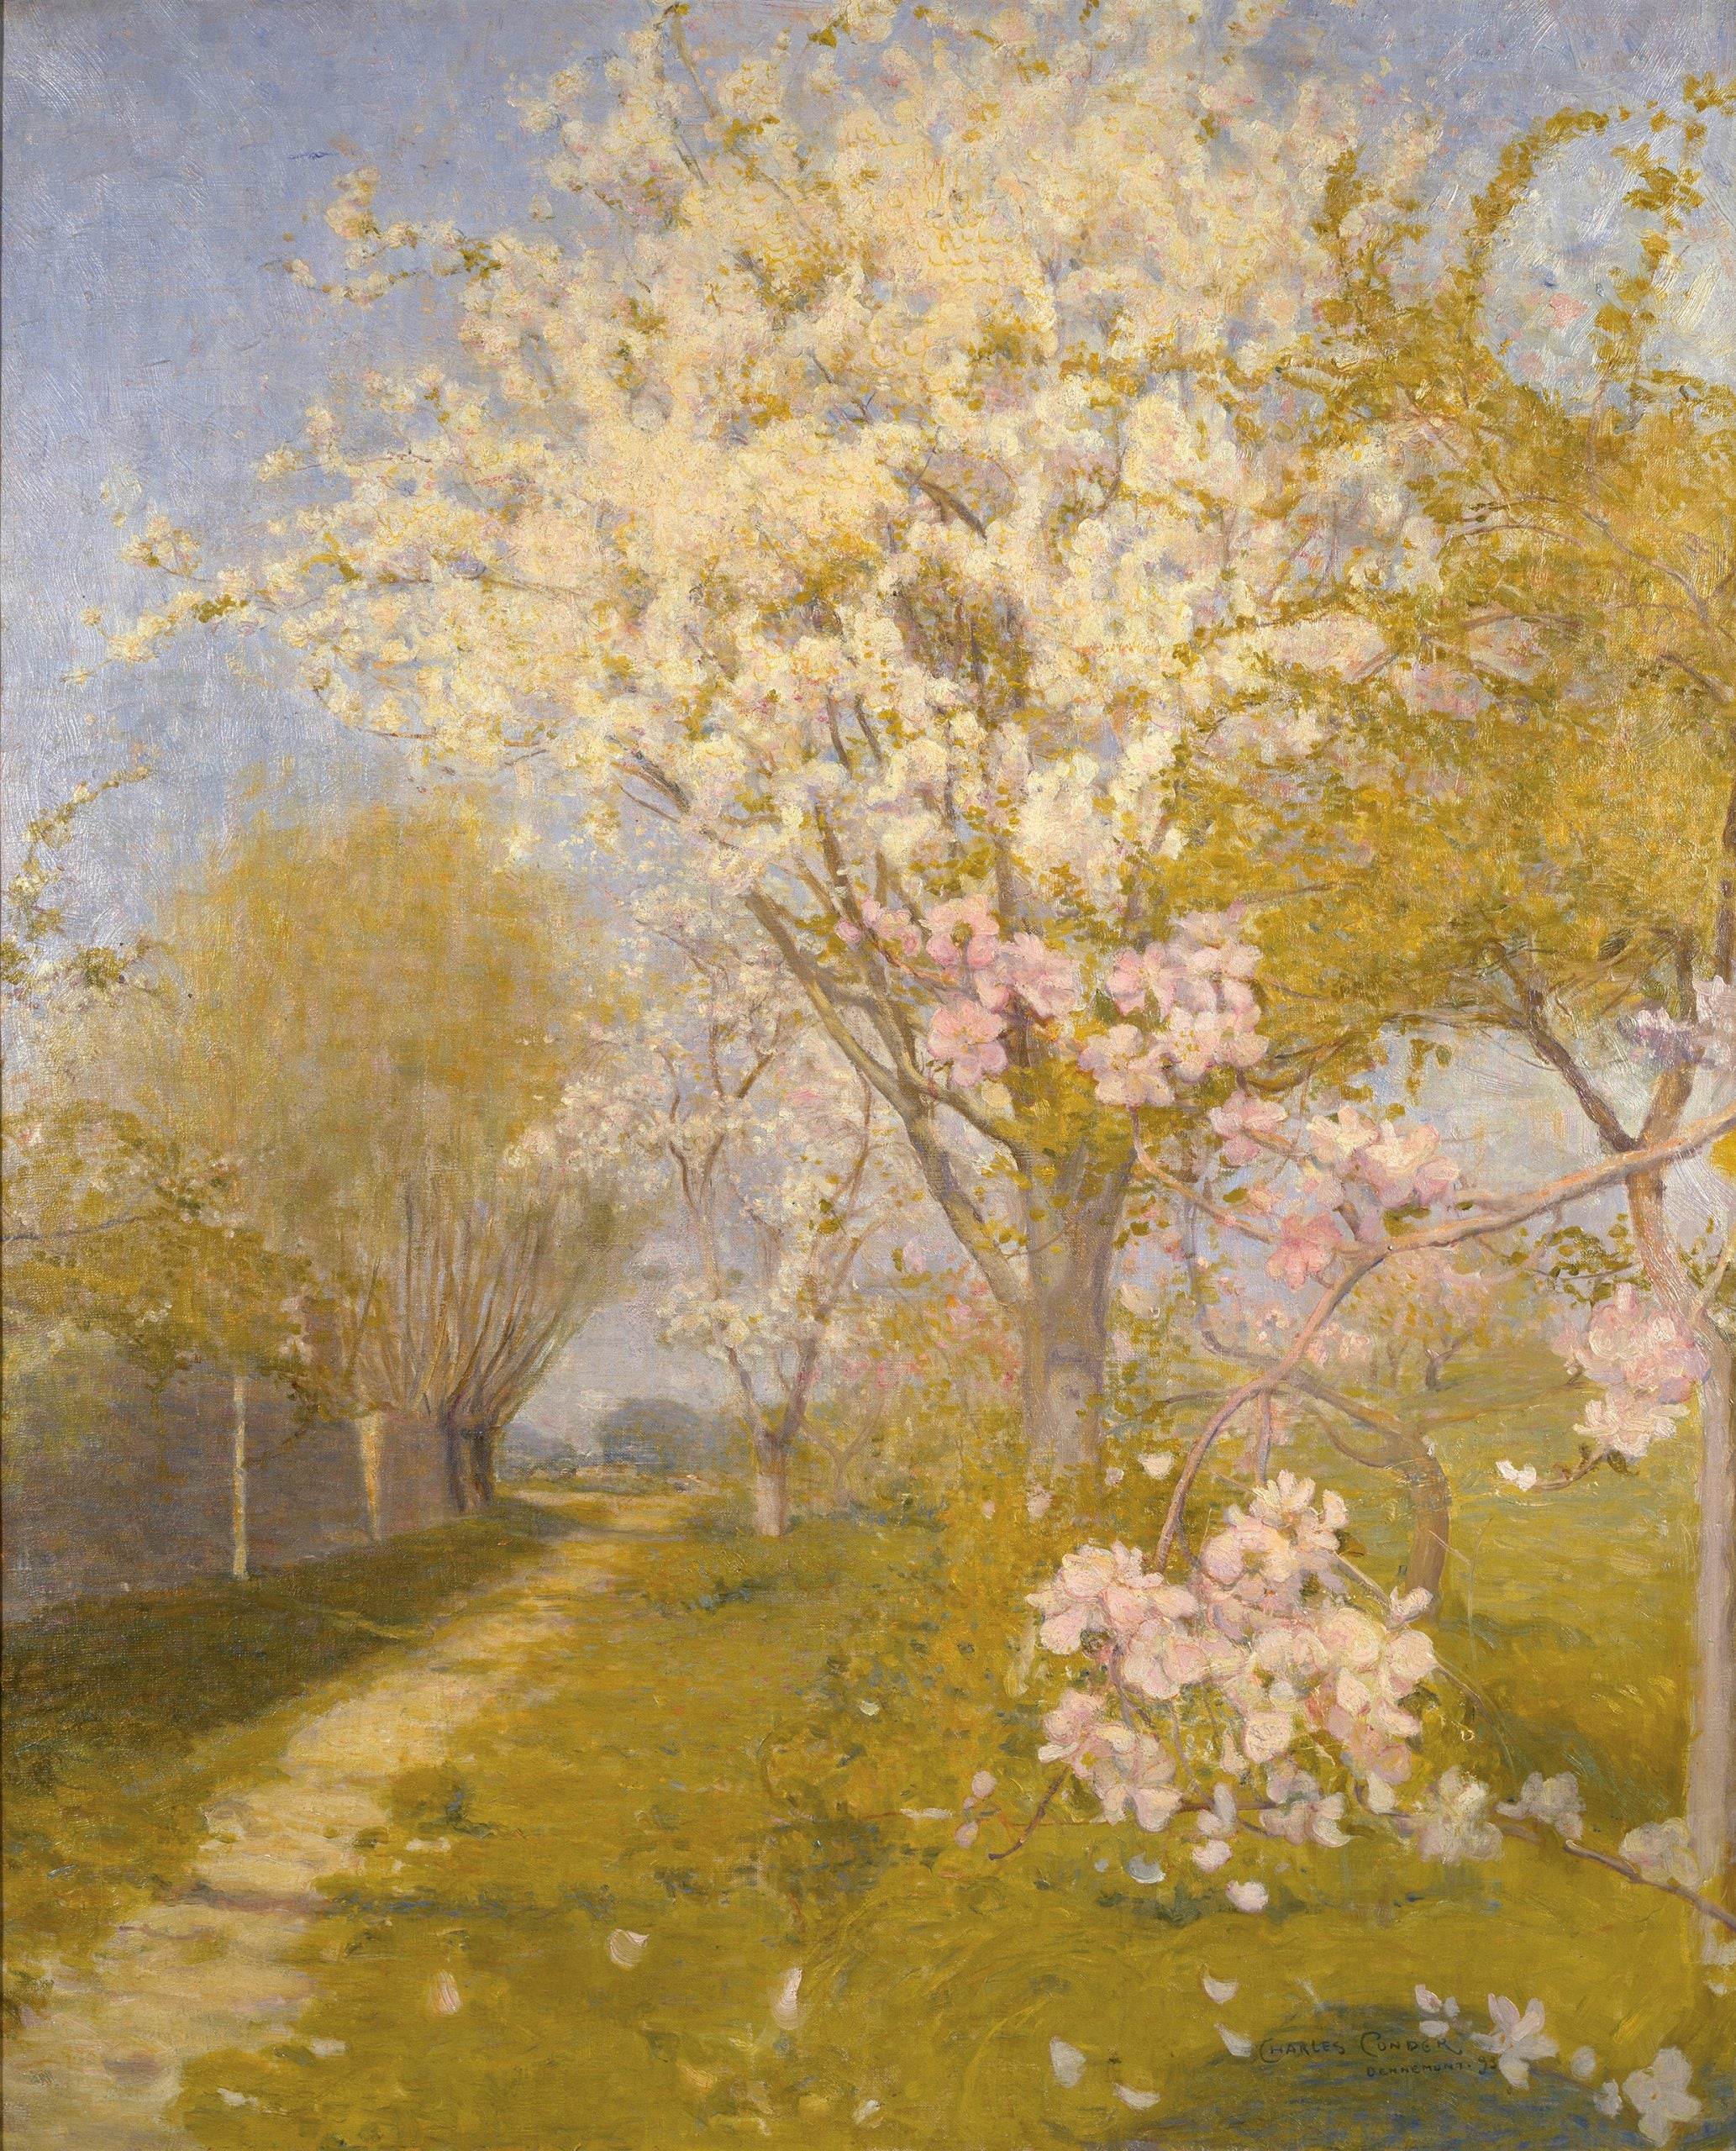 The blossom-filled landscapes of Charles Conder